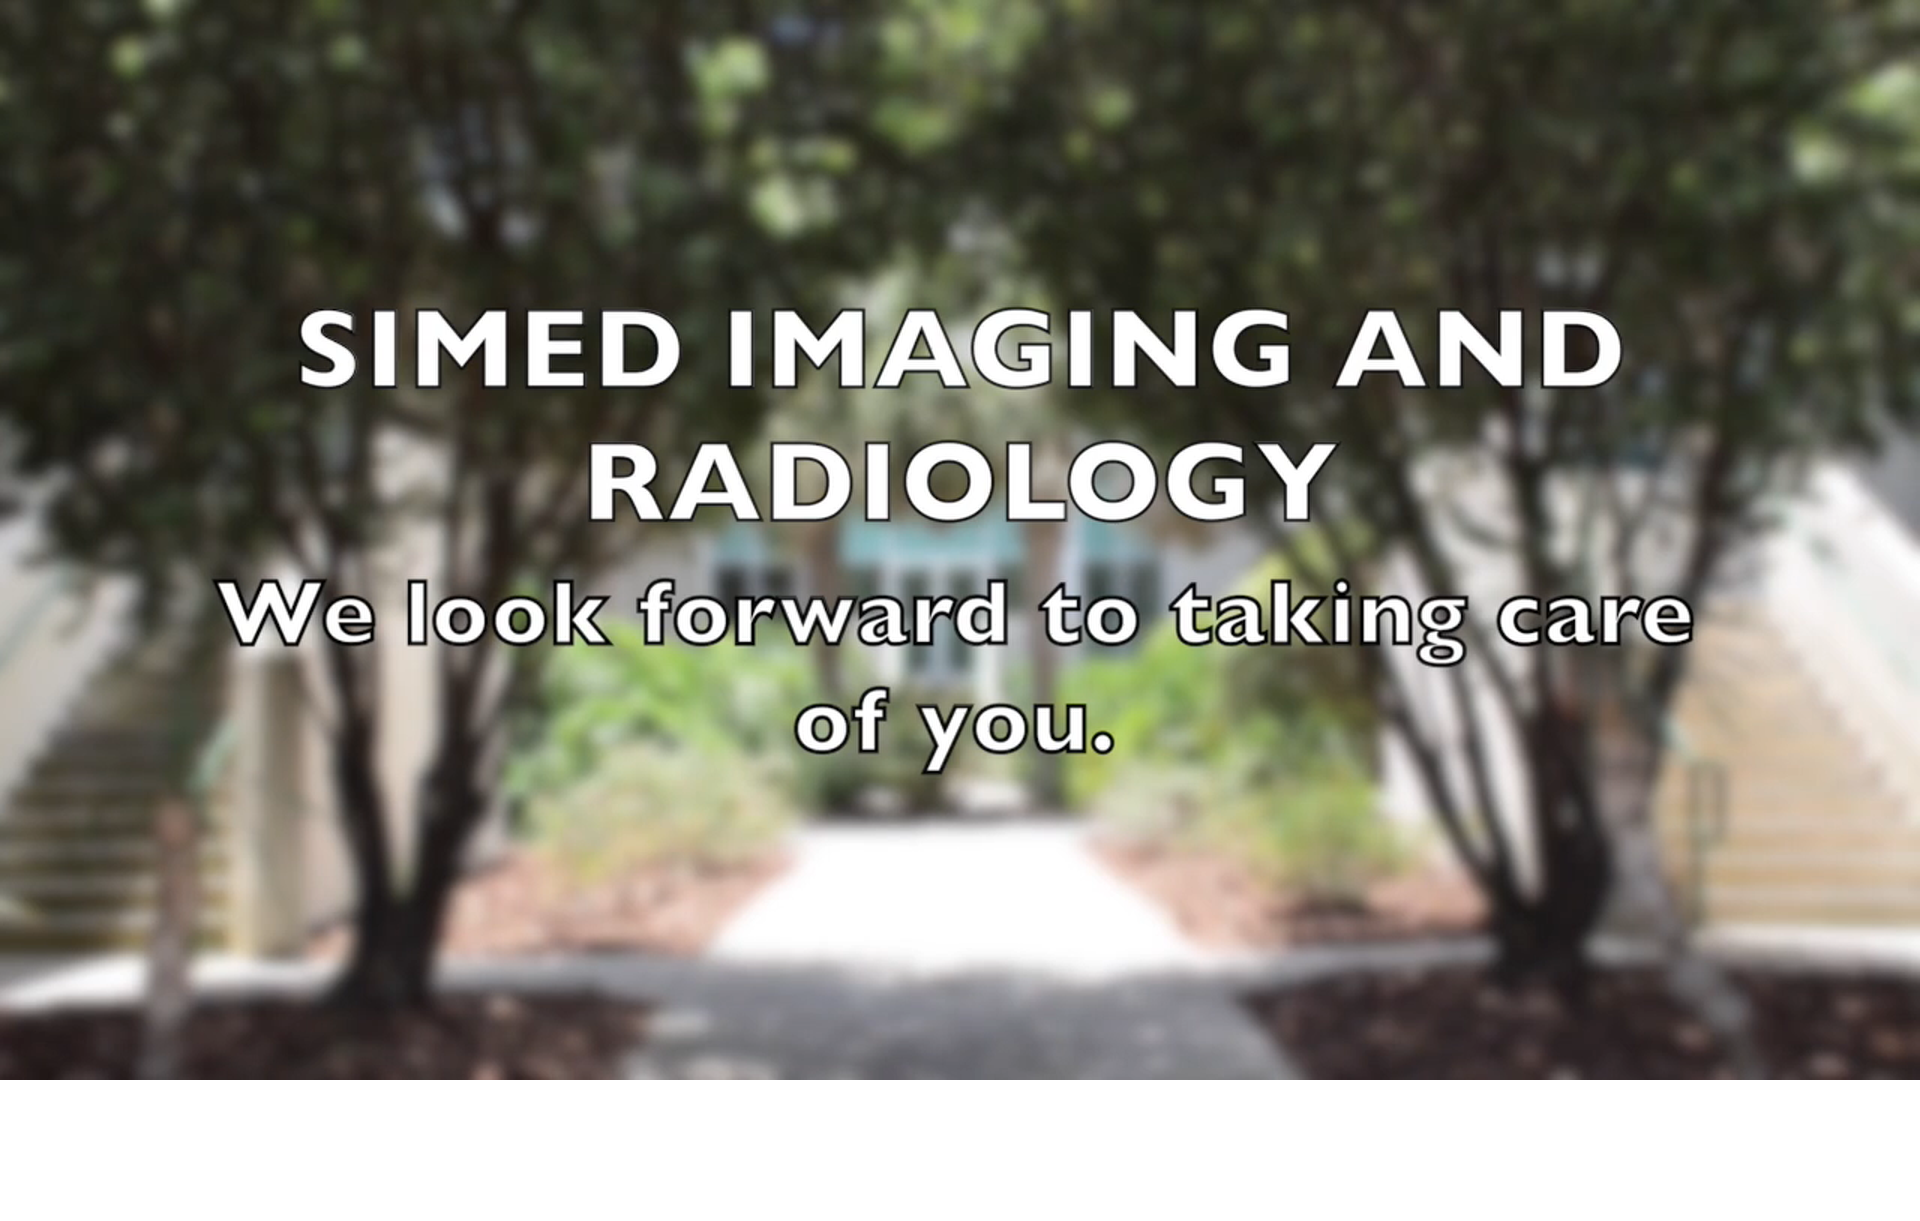 SIMED | IMAGING & RADIOLOGY